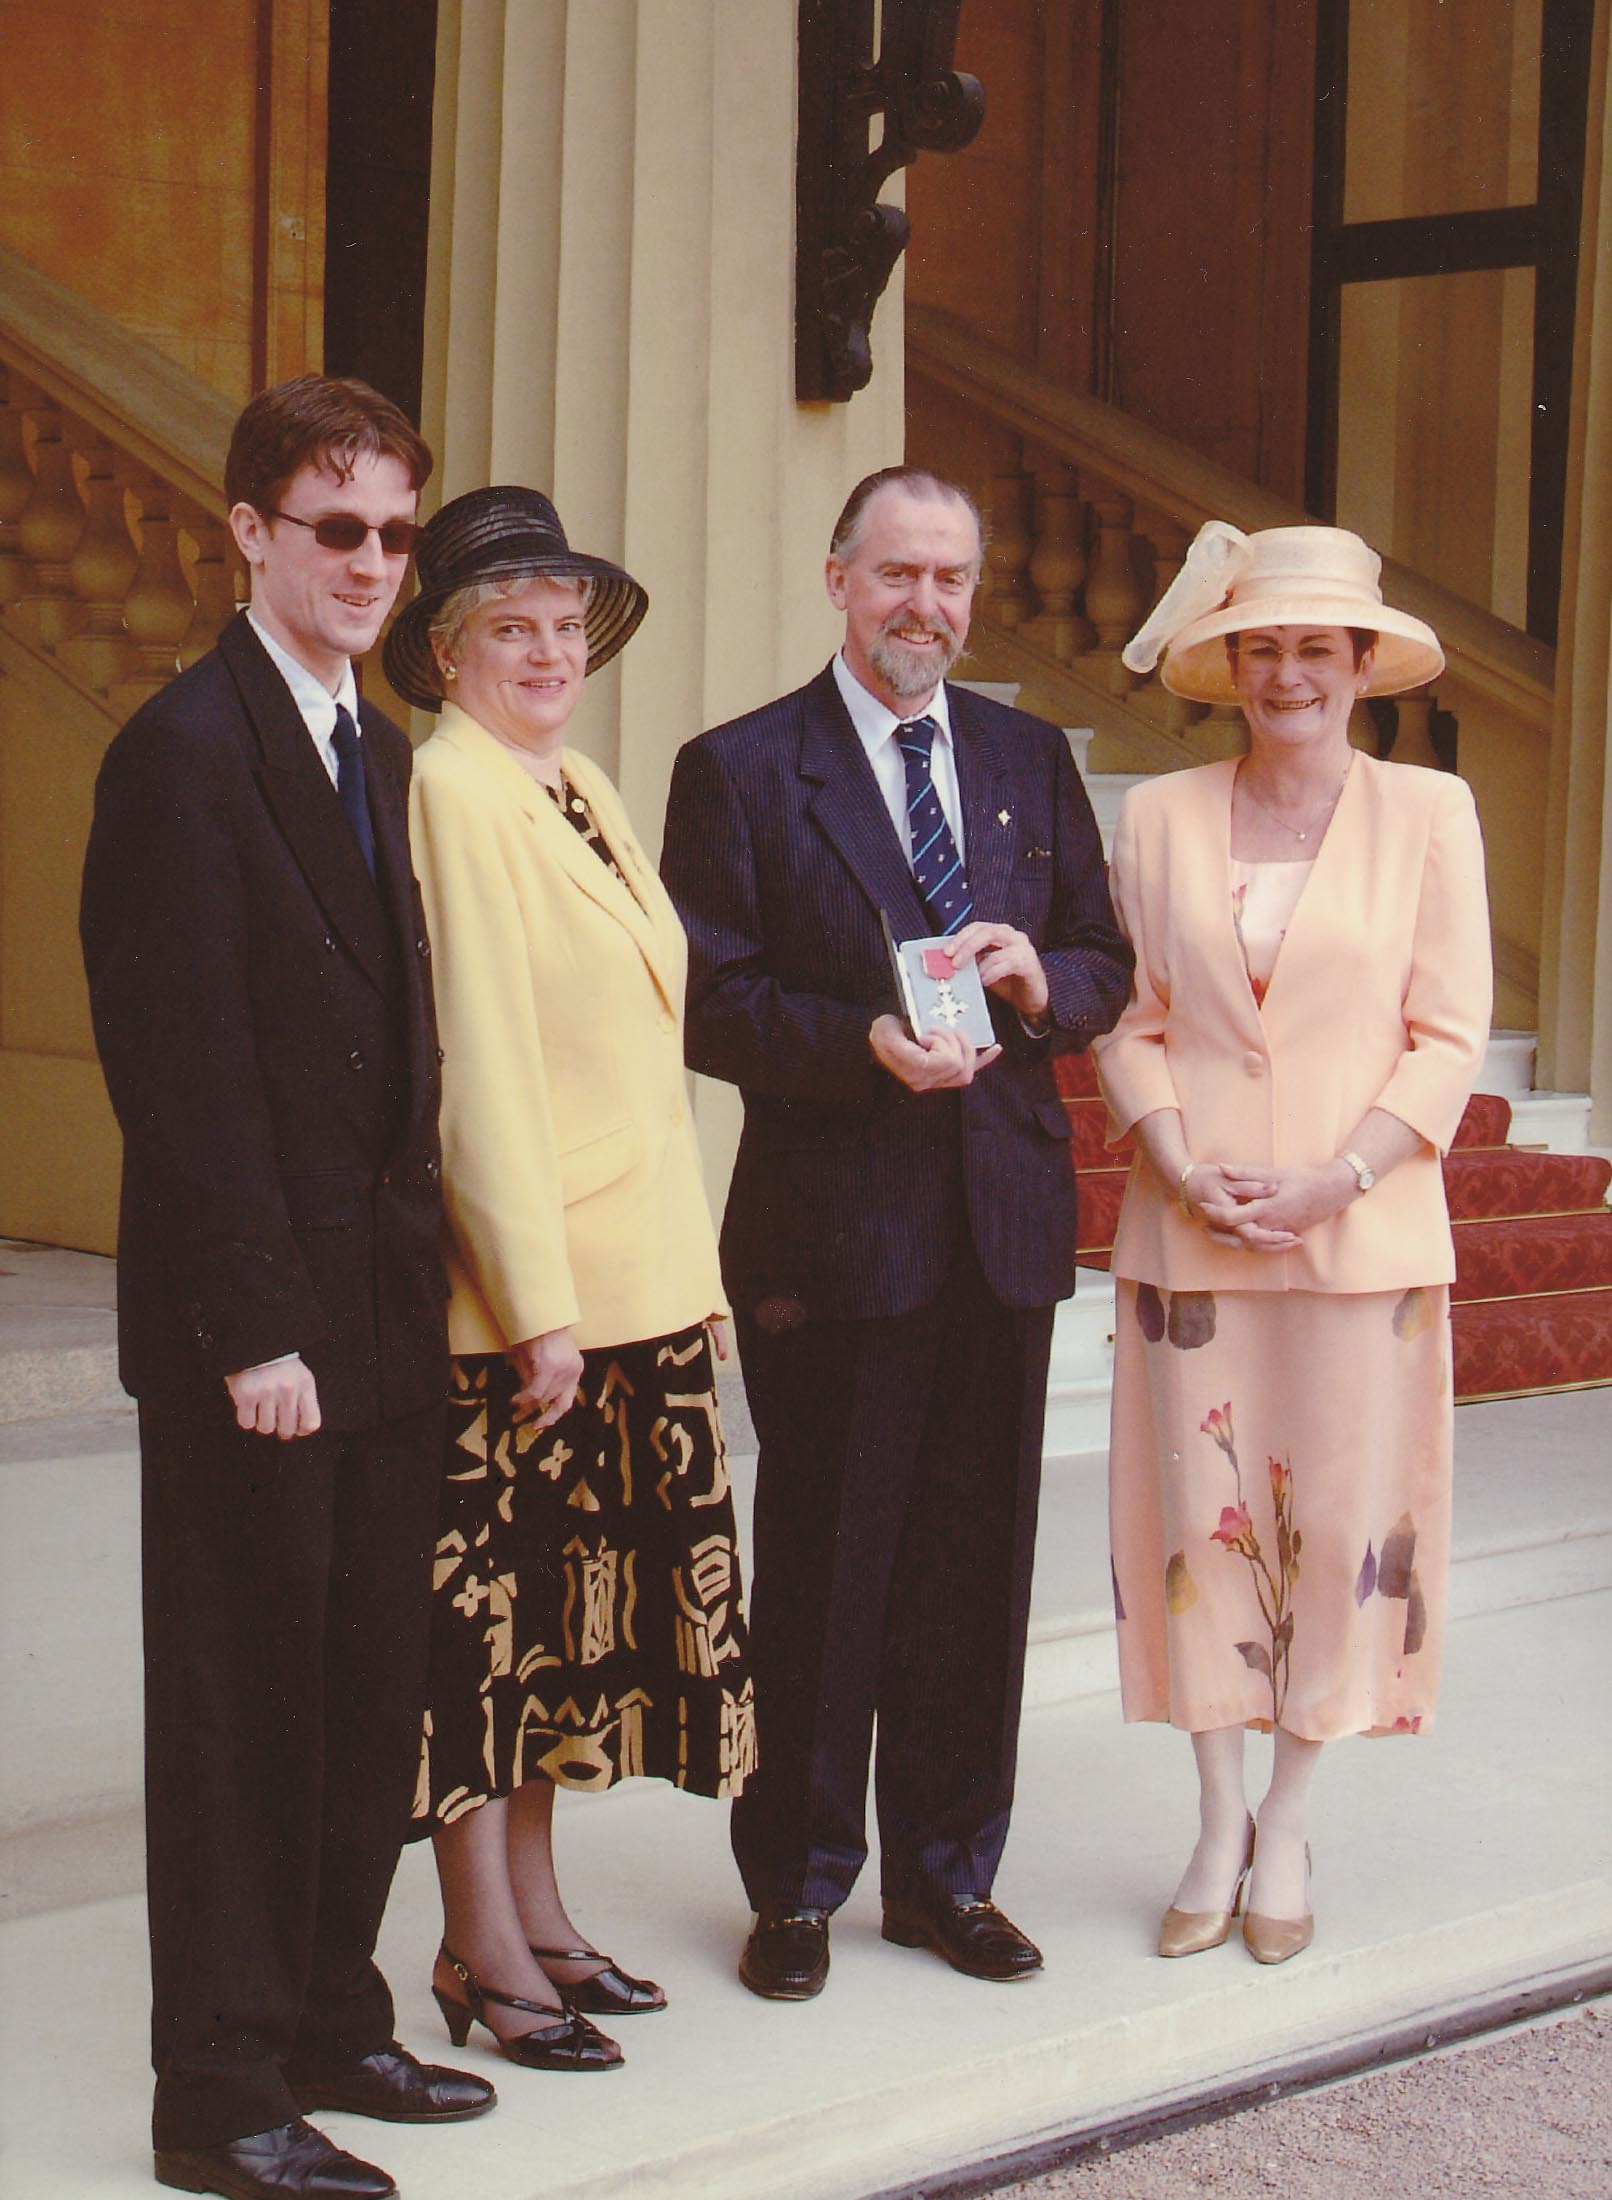 Bob Parkinson on receiving his MBE with familyat Buckingham Palace, 2002